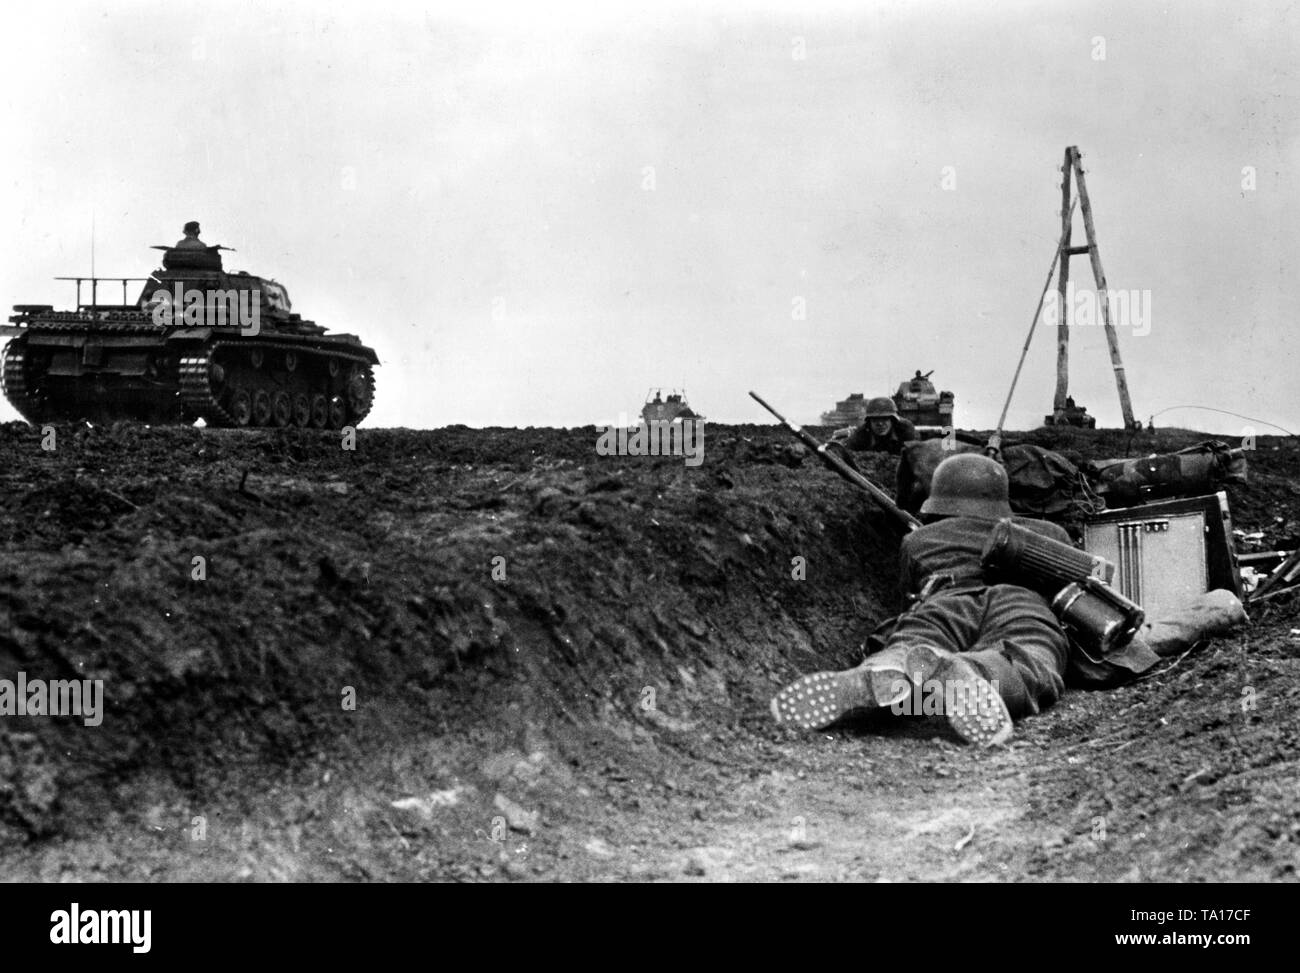 Station in a road ditch during battles in the southern section of the Eastern front. On the road is a Panzer III. War correspondent: Stock Photo